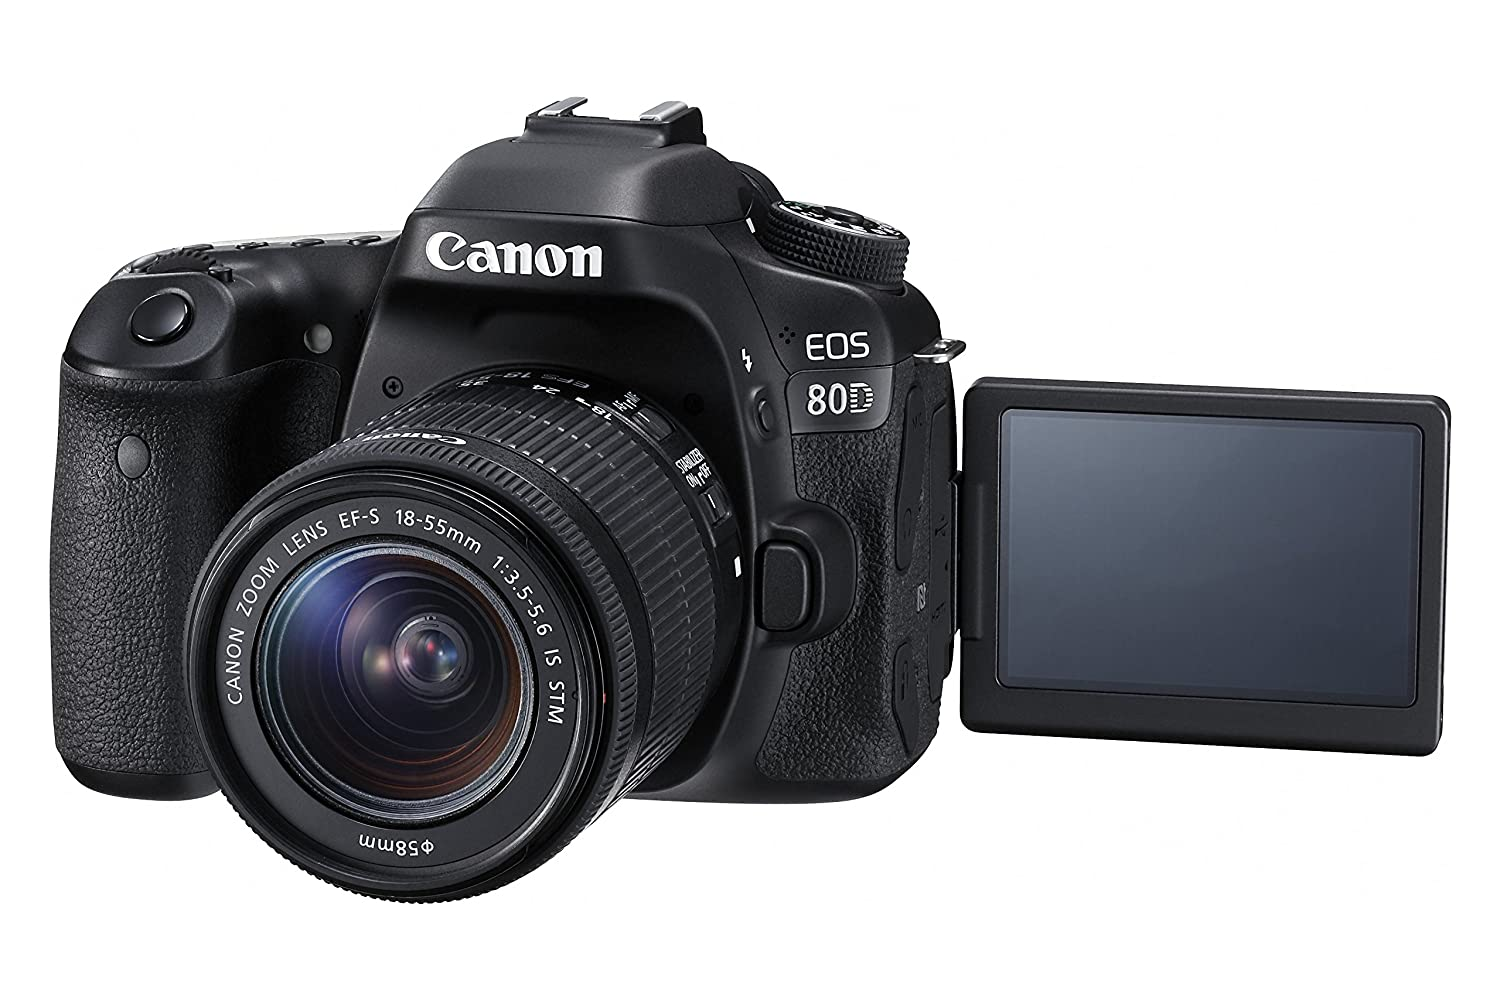 Canon Digital SLR Camera Body [EOS 80D] with EF-S 18-55mm f/3.5-5.6 Image Stabilization STM Lens with 24.2 Megapixel (APS-C) CMOS Sensor and Dual Pixel CMOS